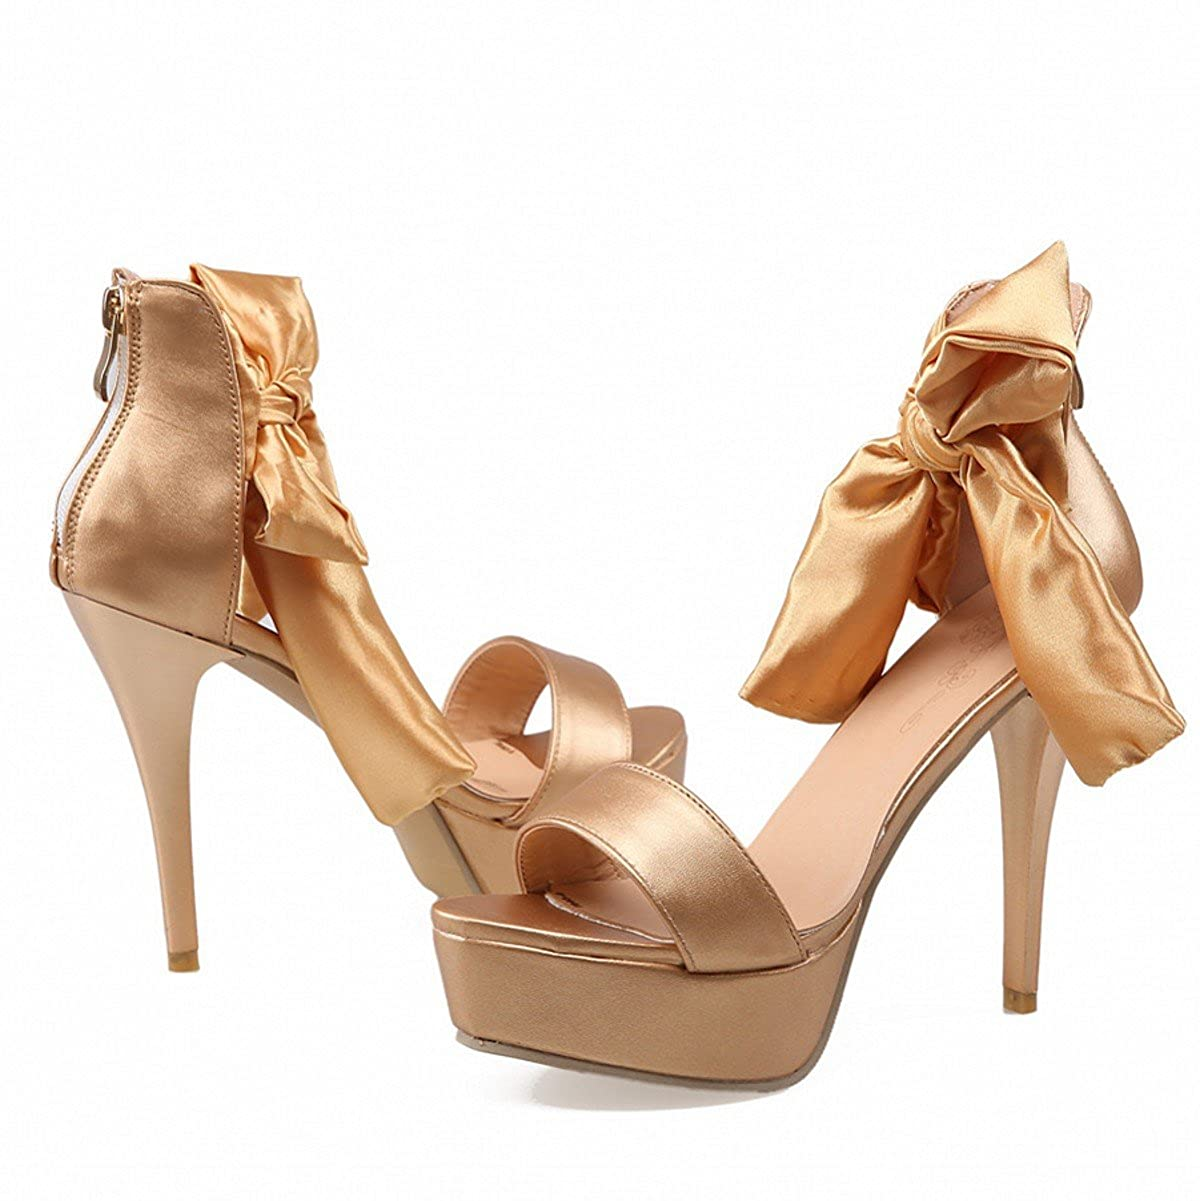 13bfd2925f2 Rongzhi Womens Platform High Heels Stilettos Pumps Ankle Strap Heeled  Sandals Dress Prom Shoes Peep Toe  Amazon.co.uk  Shoes   Bags